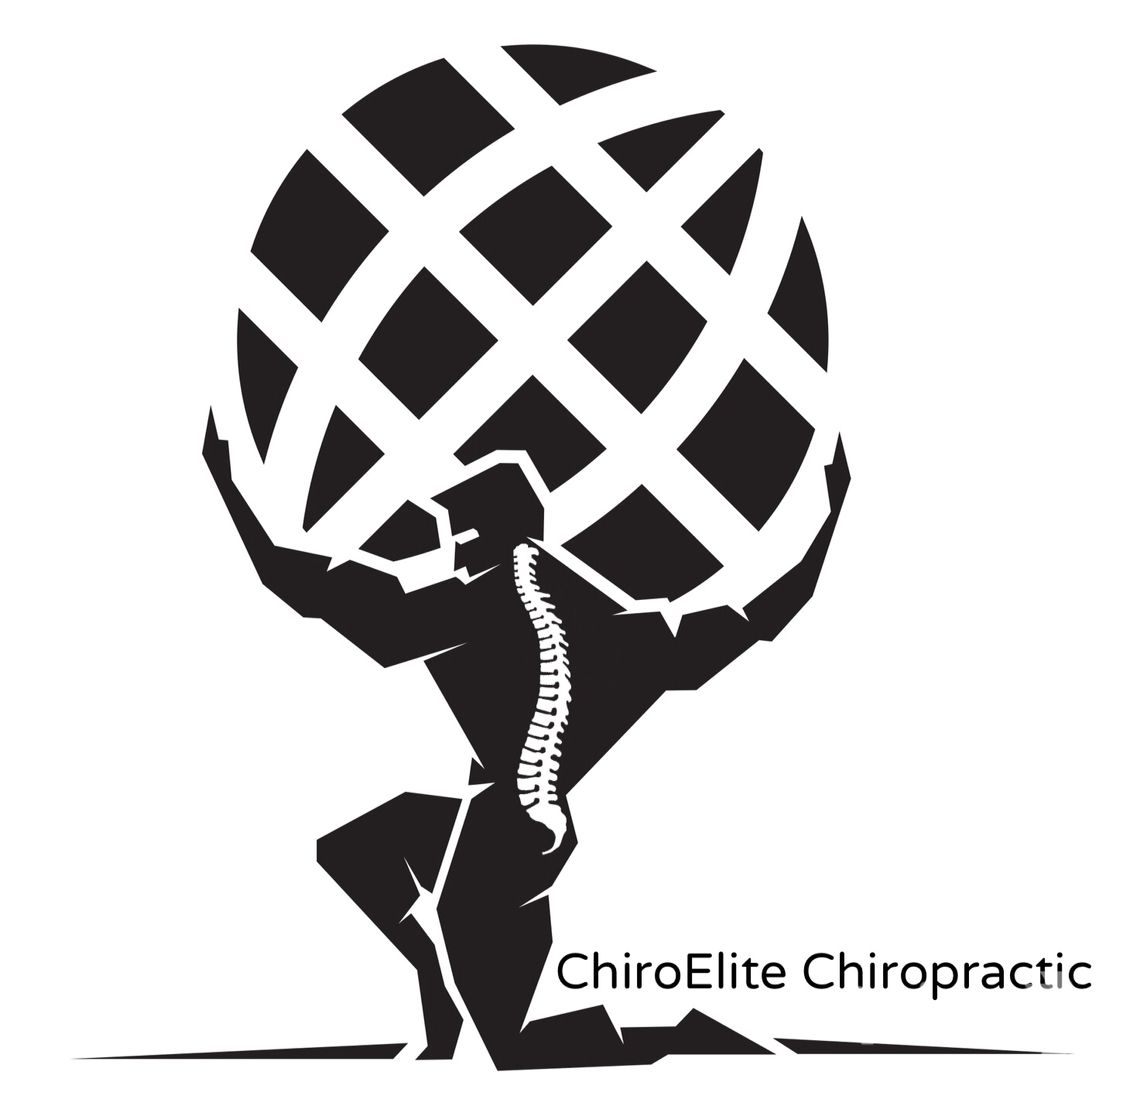 The perfect new logo for our Chiropractic clinic using the